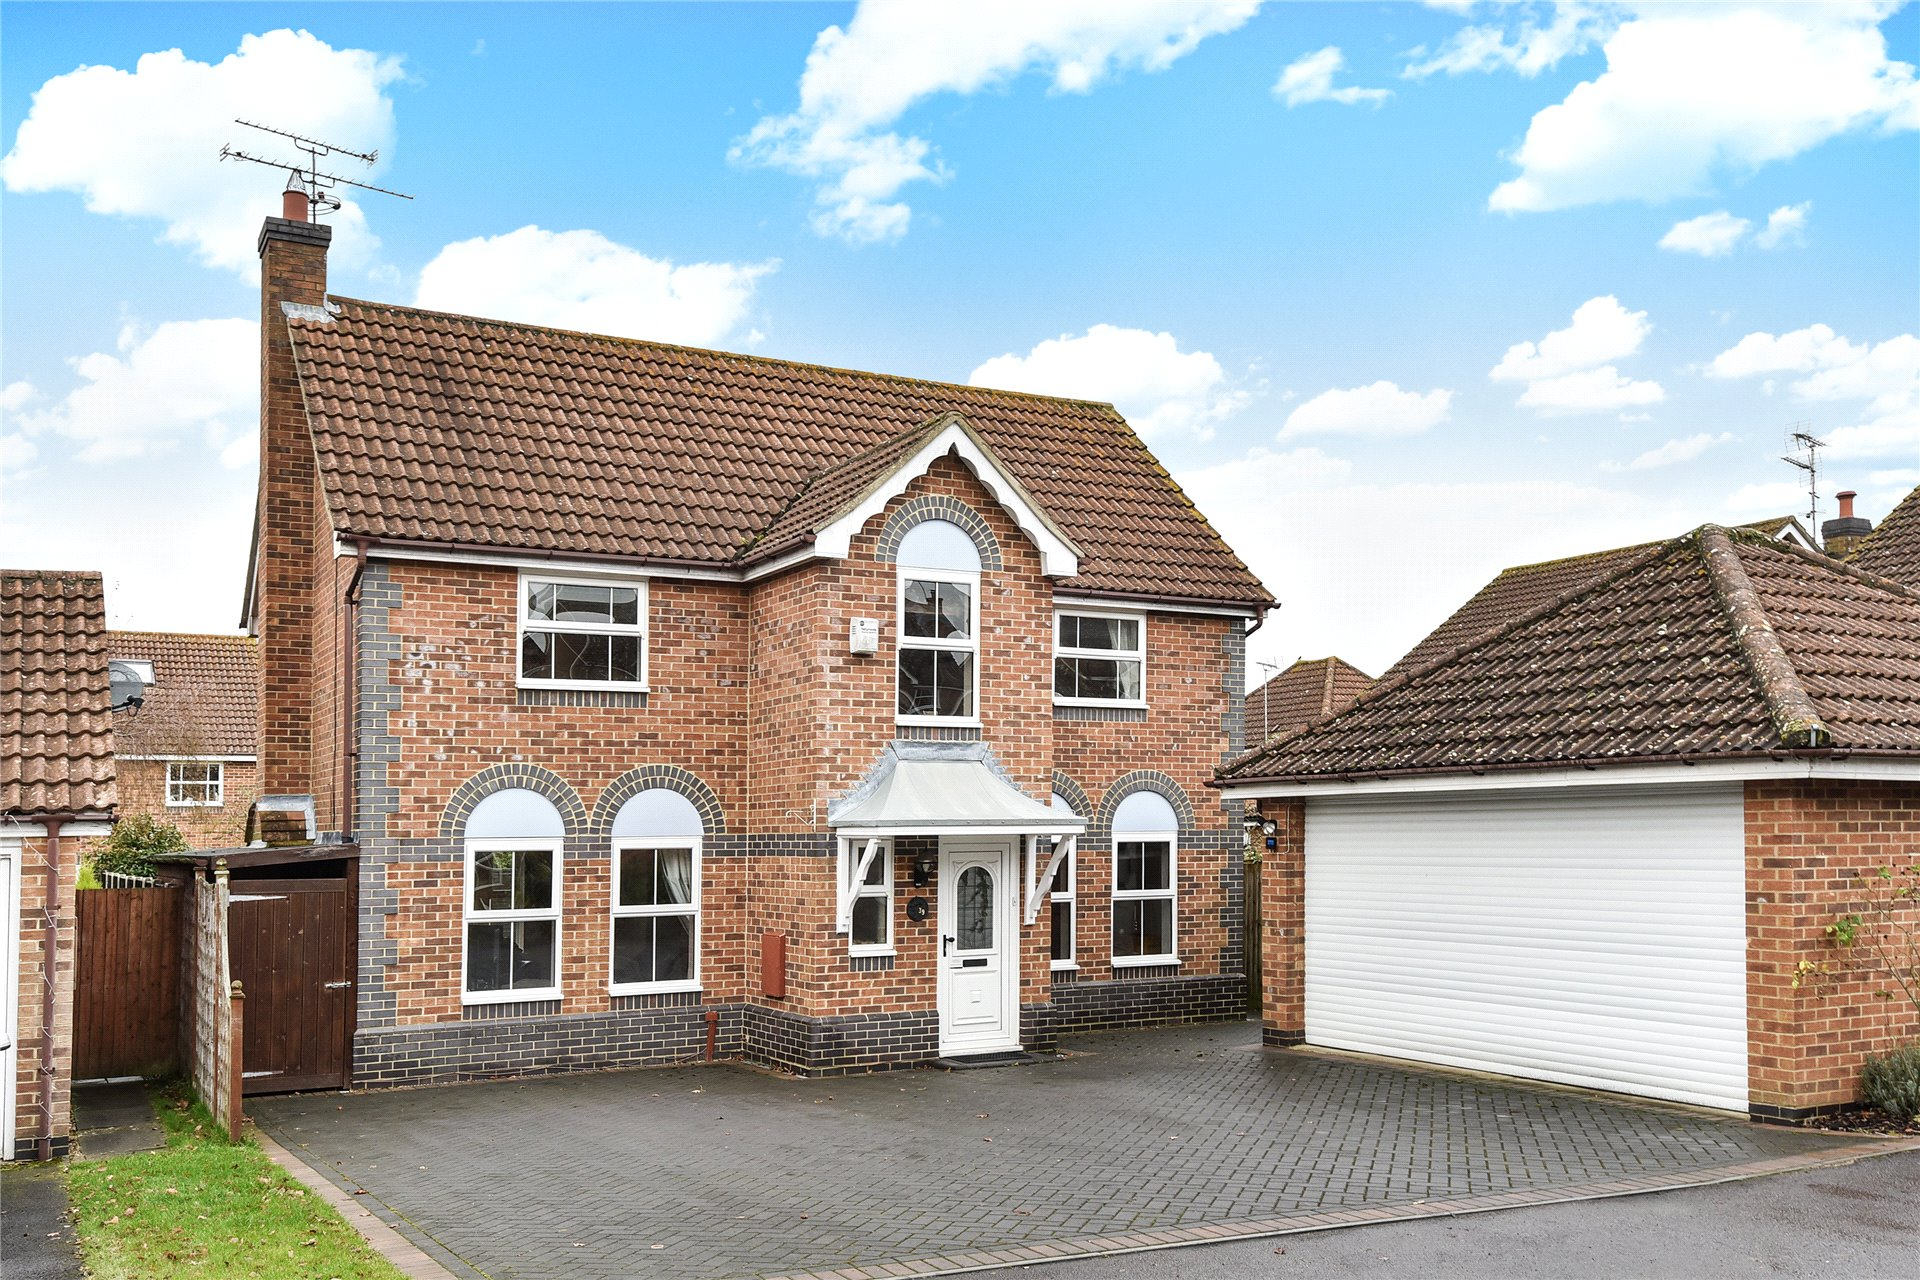 4 Bedrooms Detached House for sale in Lower Canes, Yateley, Hampshire, GU46